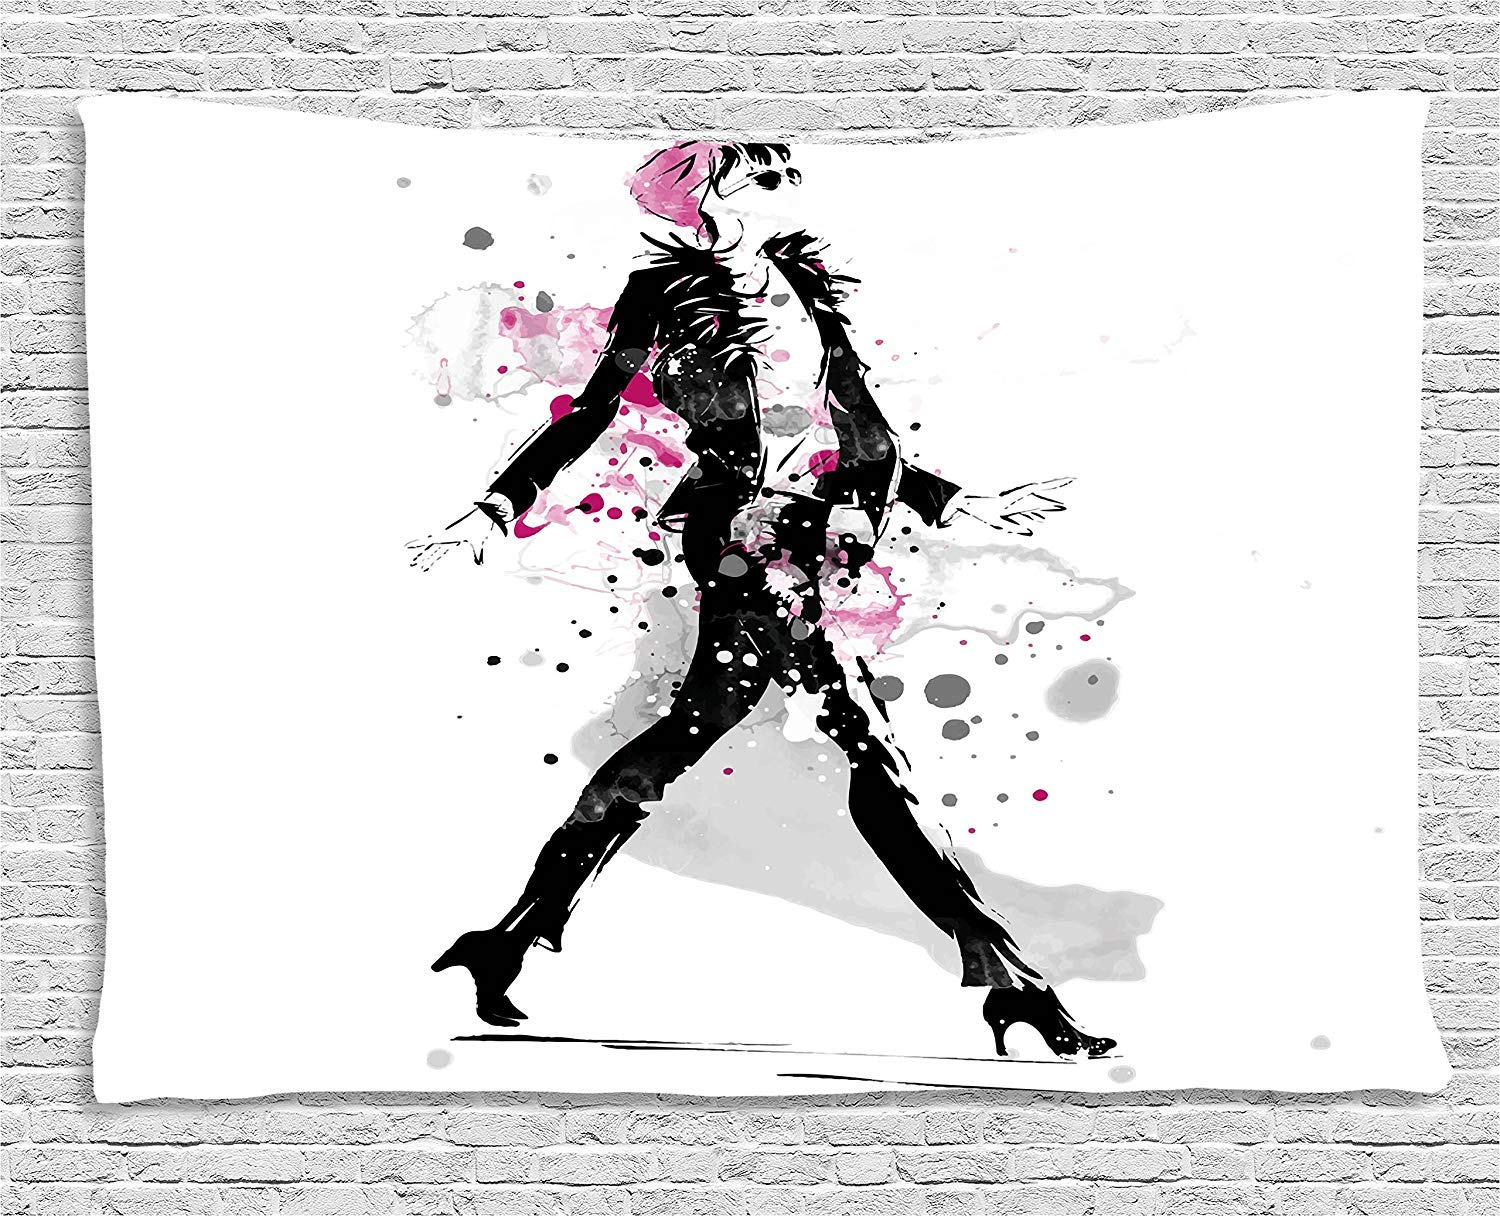 THndjsh Fashion Tapestry, Glamorous Stylish Sexy Woman Model on Catwalk Runway in Vintage Clothes Design, Wall Hanging for Bedroom Living Room Dorm, 60 W X 40 L Inches, Black Pink